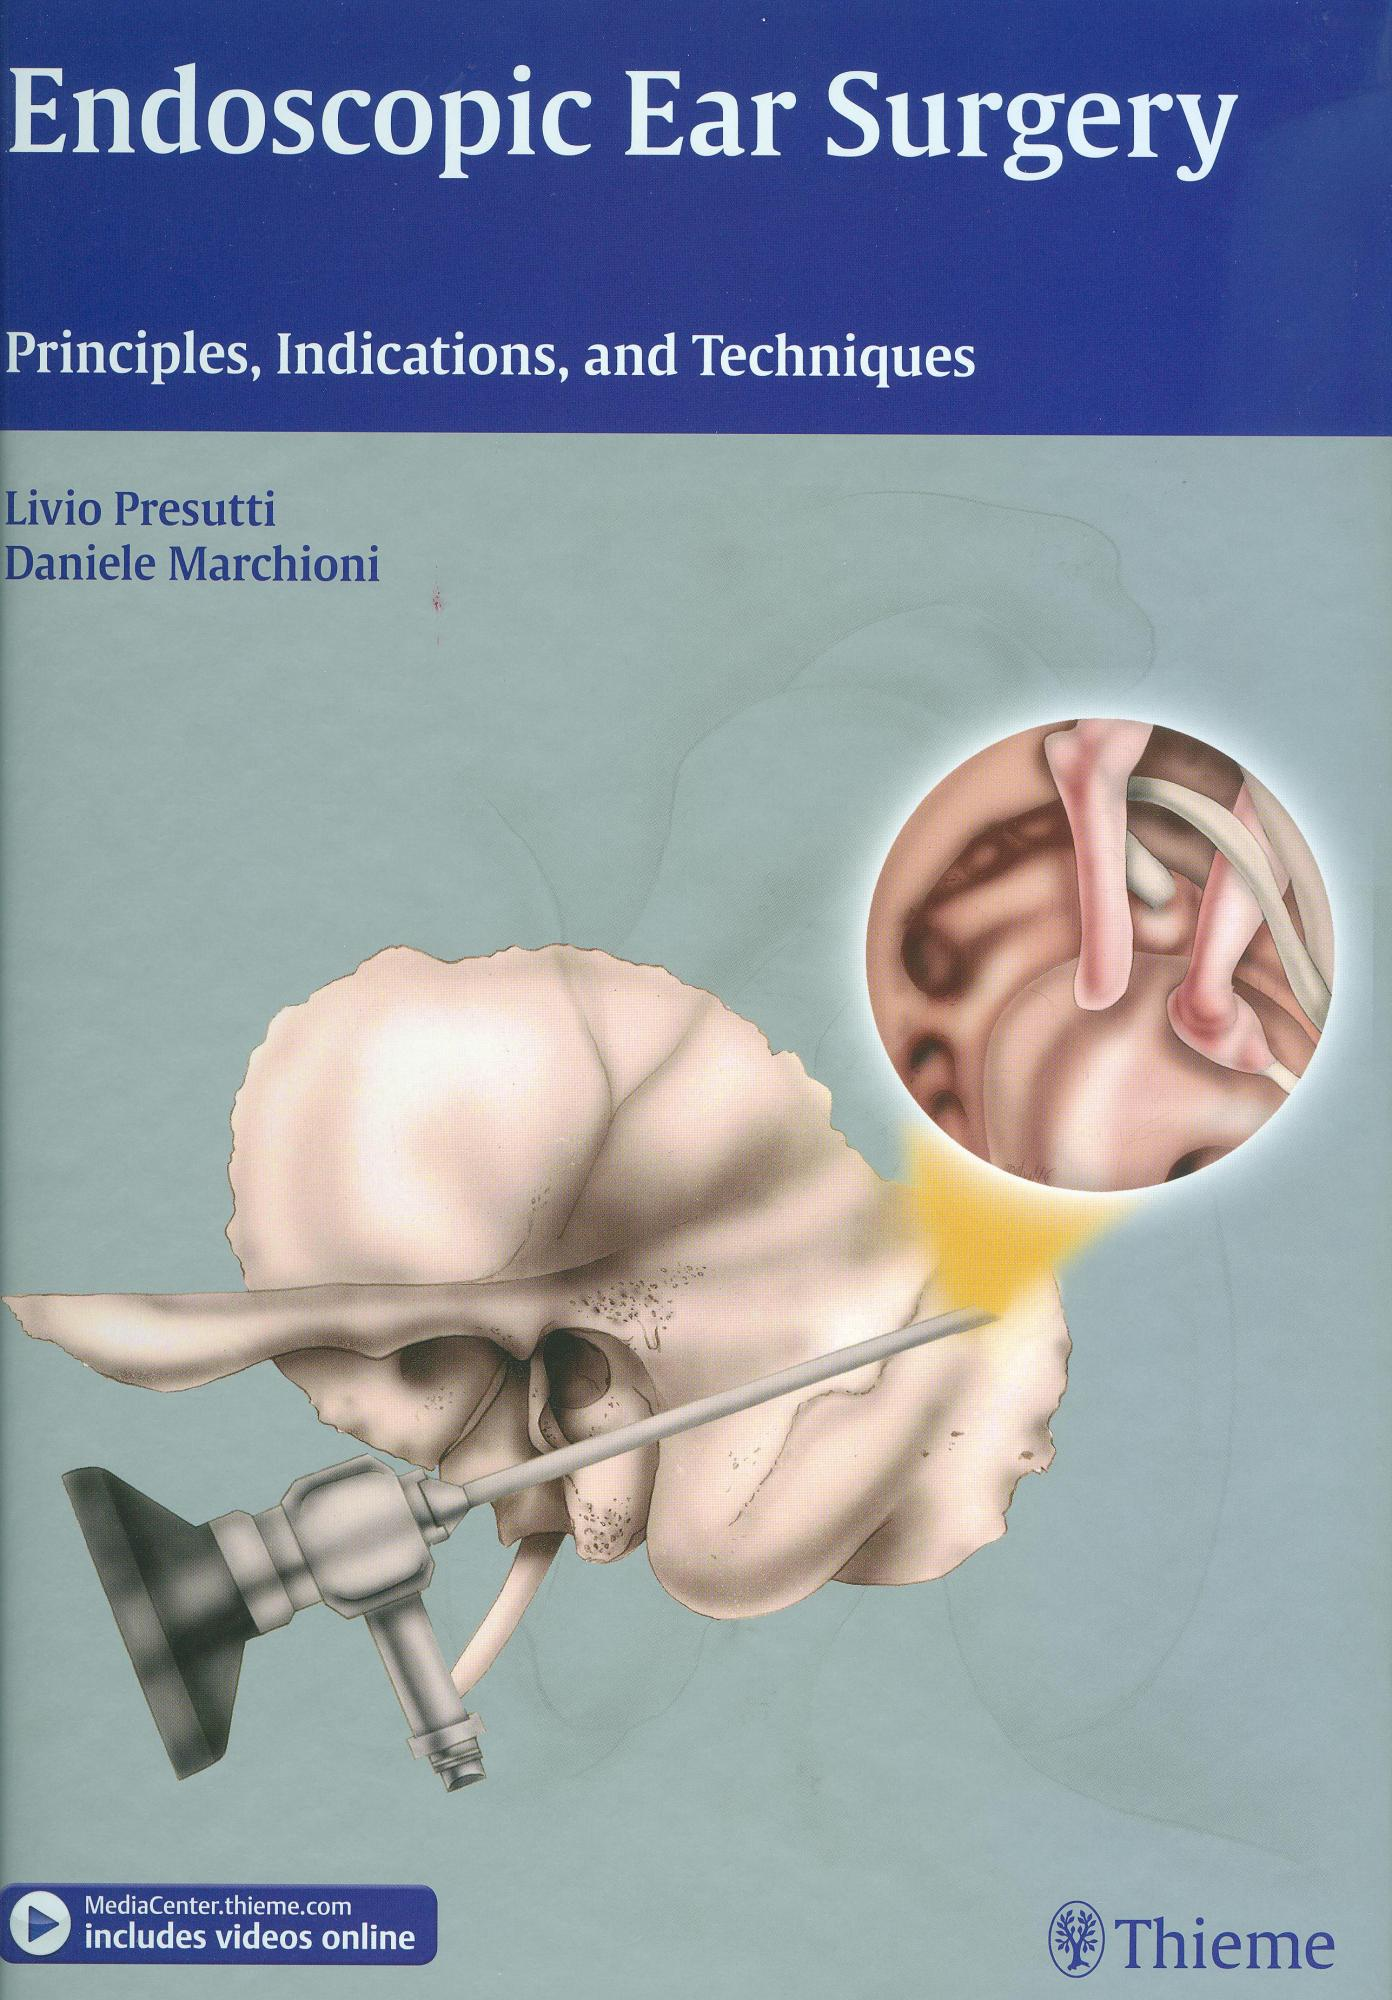 Endoscopic Ear Surgery: Principles, Indications and Techniques